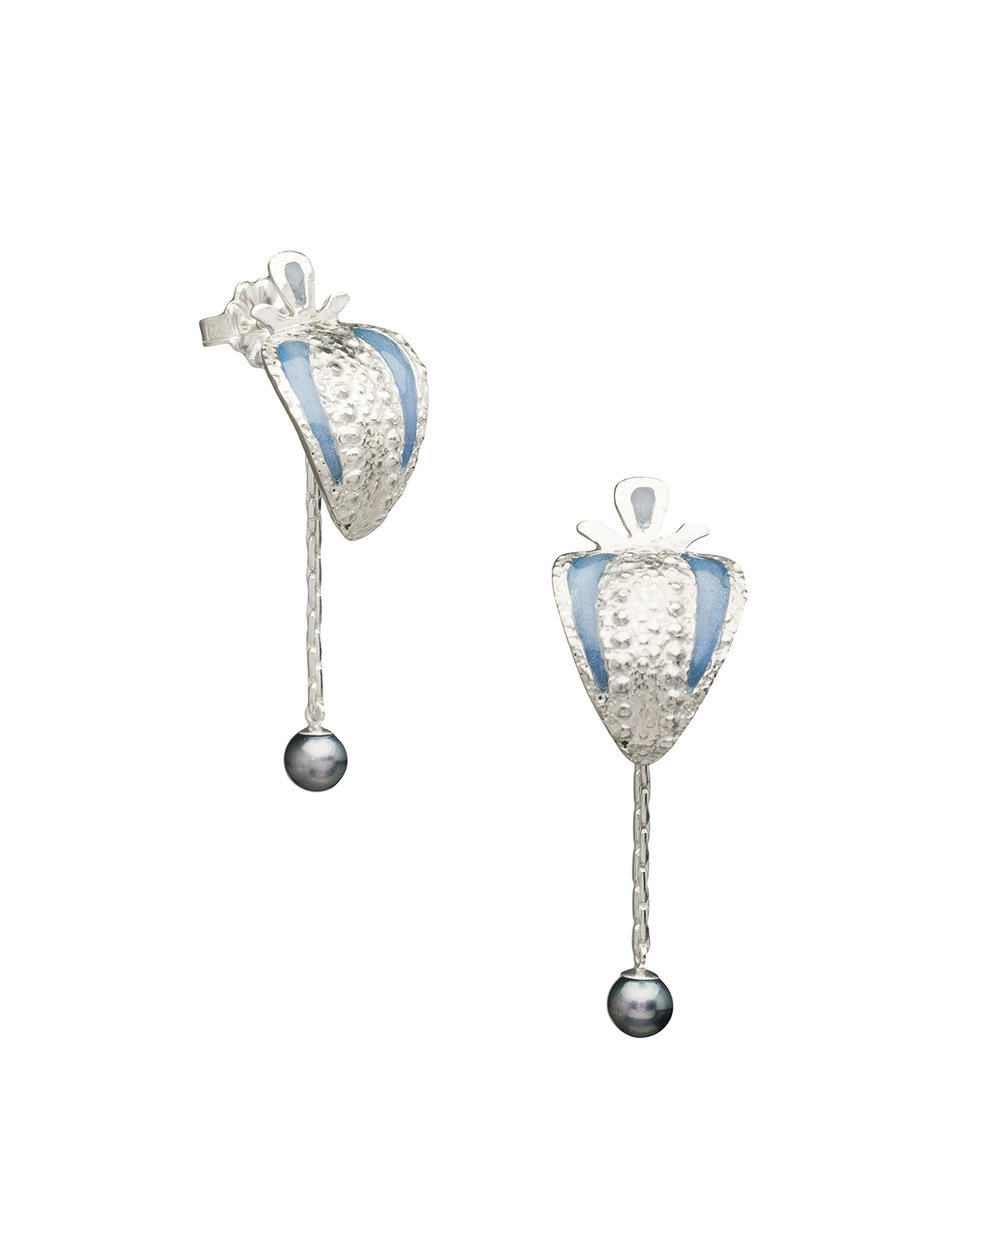 2015-10-Mary-Lynn-Podiluk-Argot-Earrings-P101a.jpg